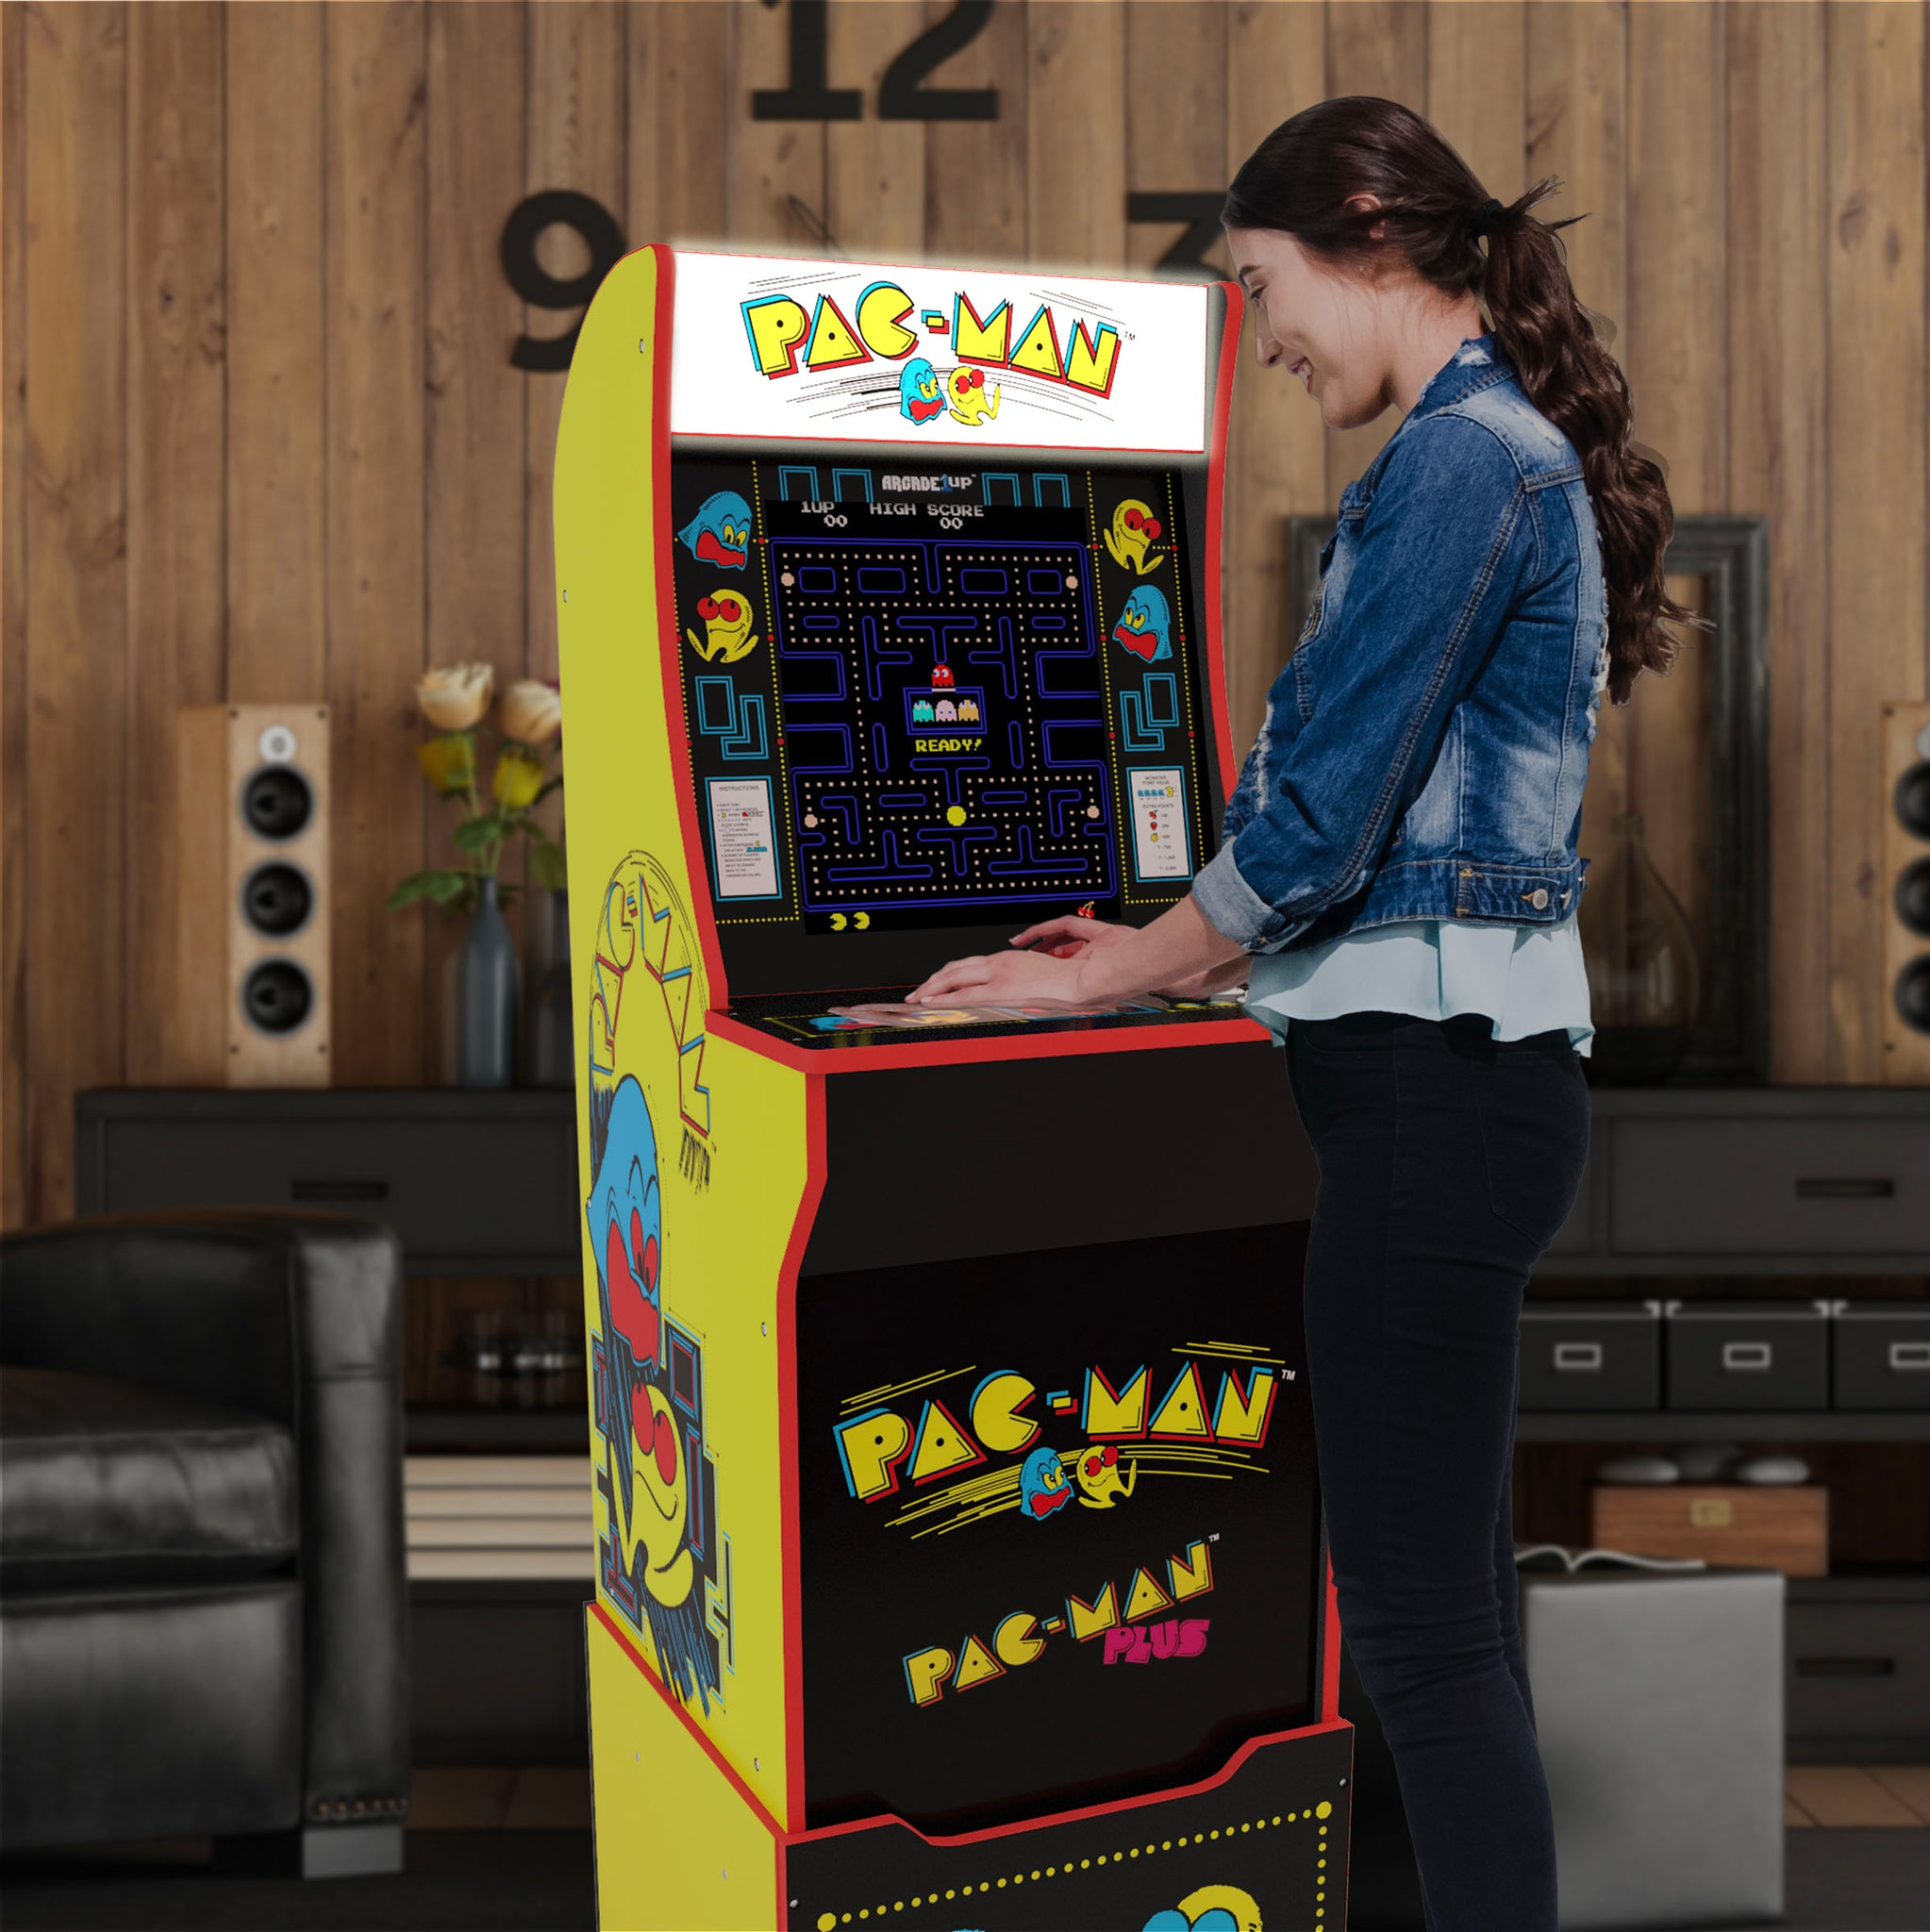 Pac-Man Arcade Machine includes illuminated top marque, riser and stool